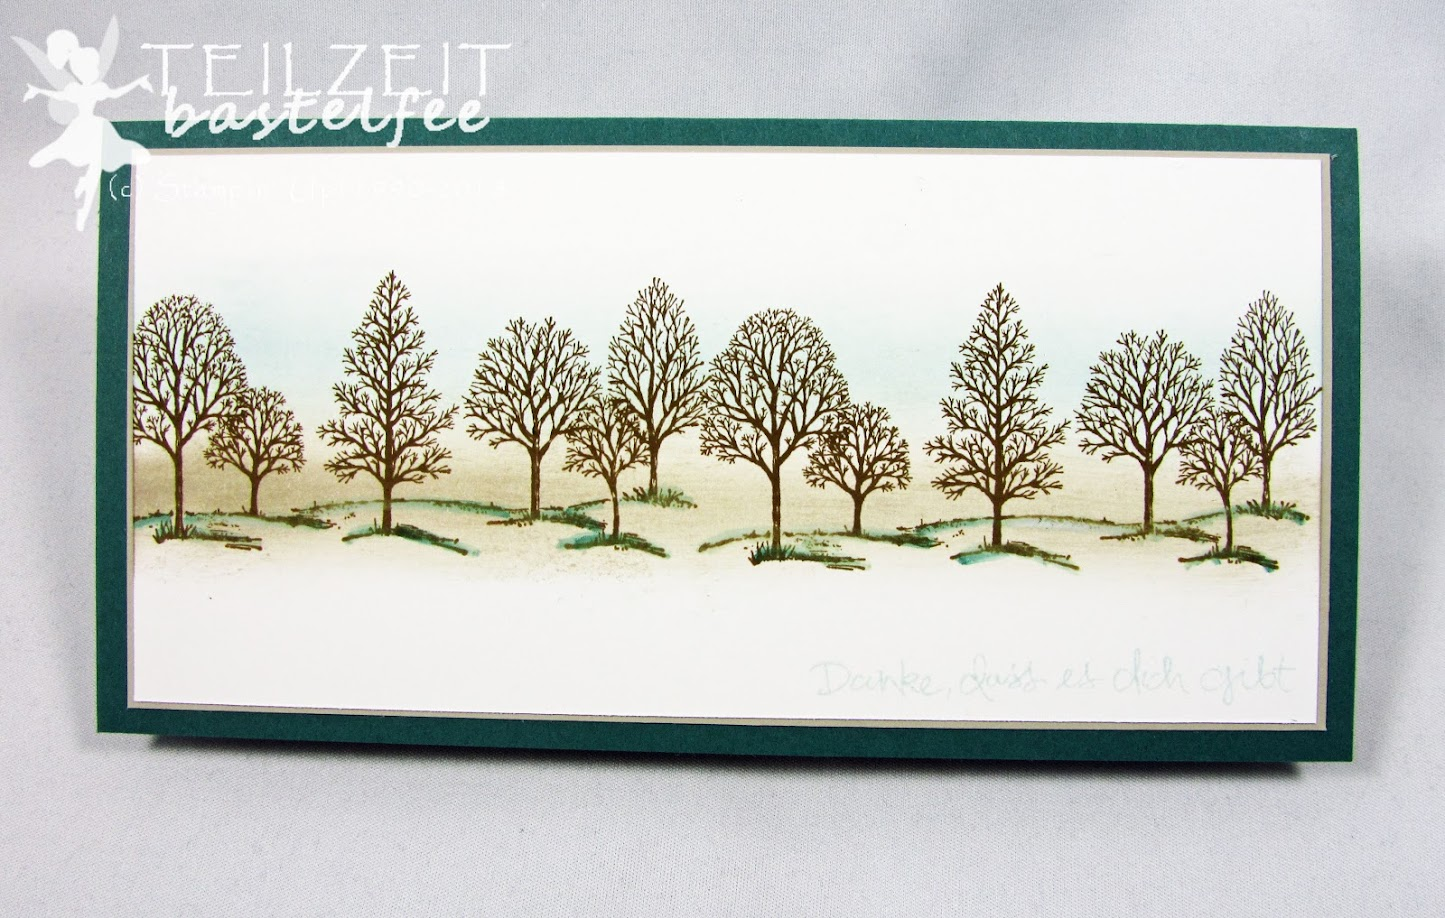 Stampin' Up! - In{k}spire_me #350, Lovely as a tree